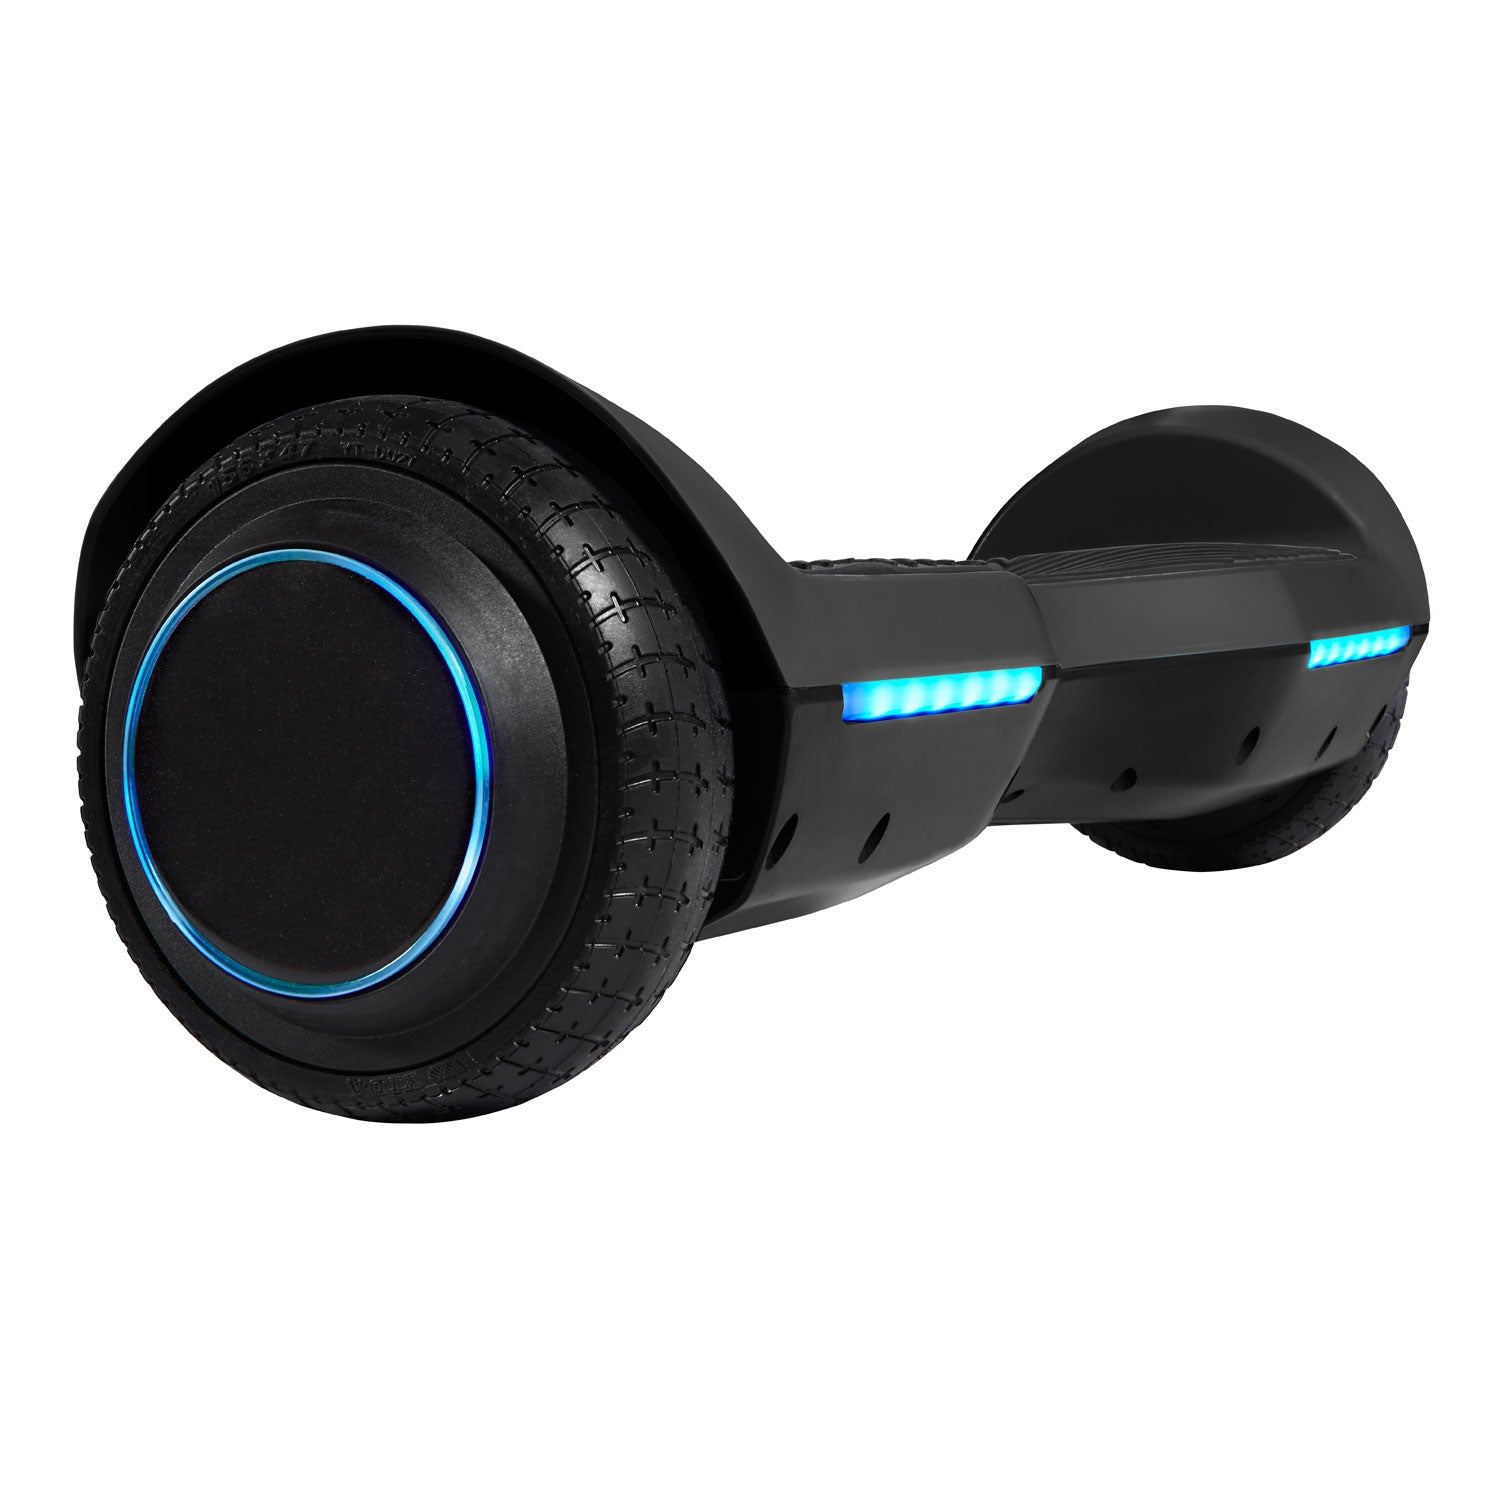 Black Main image srx bluetooth hoverboard